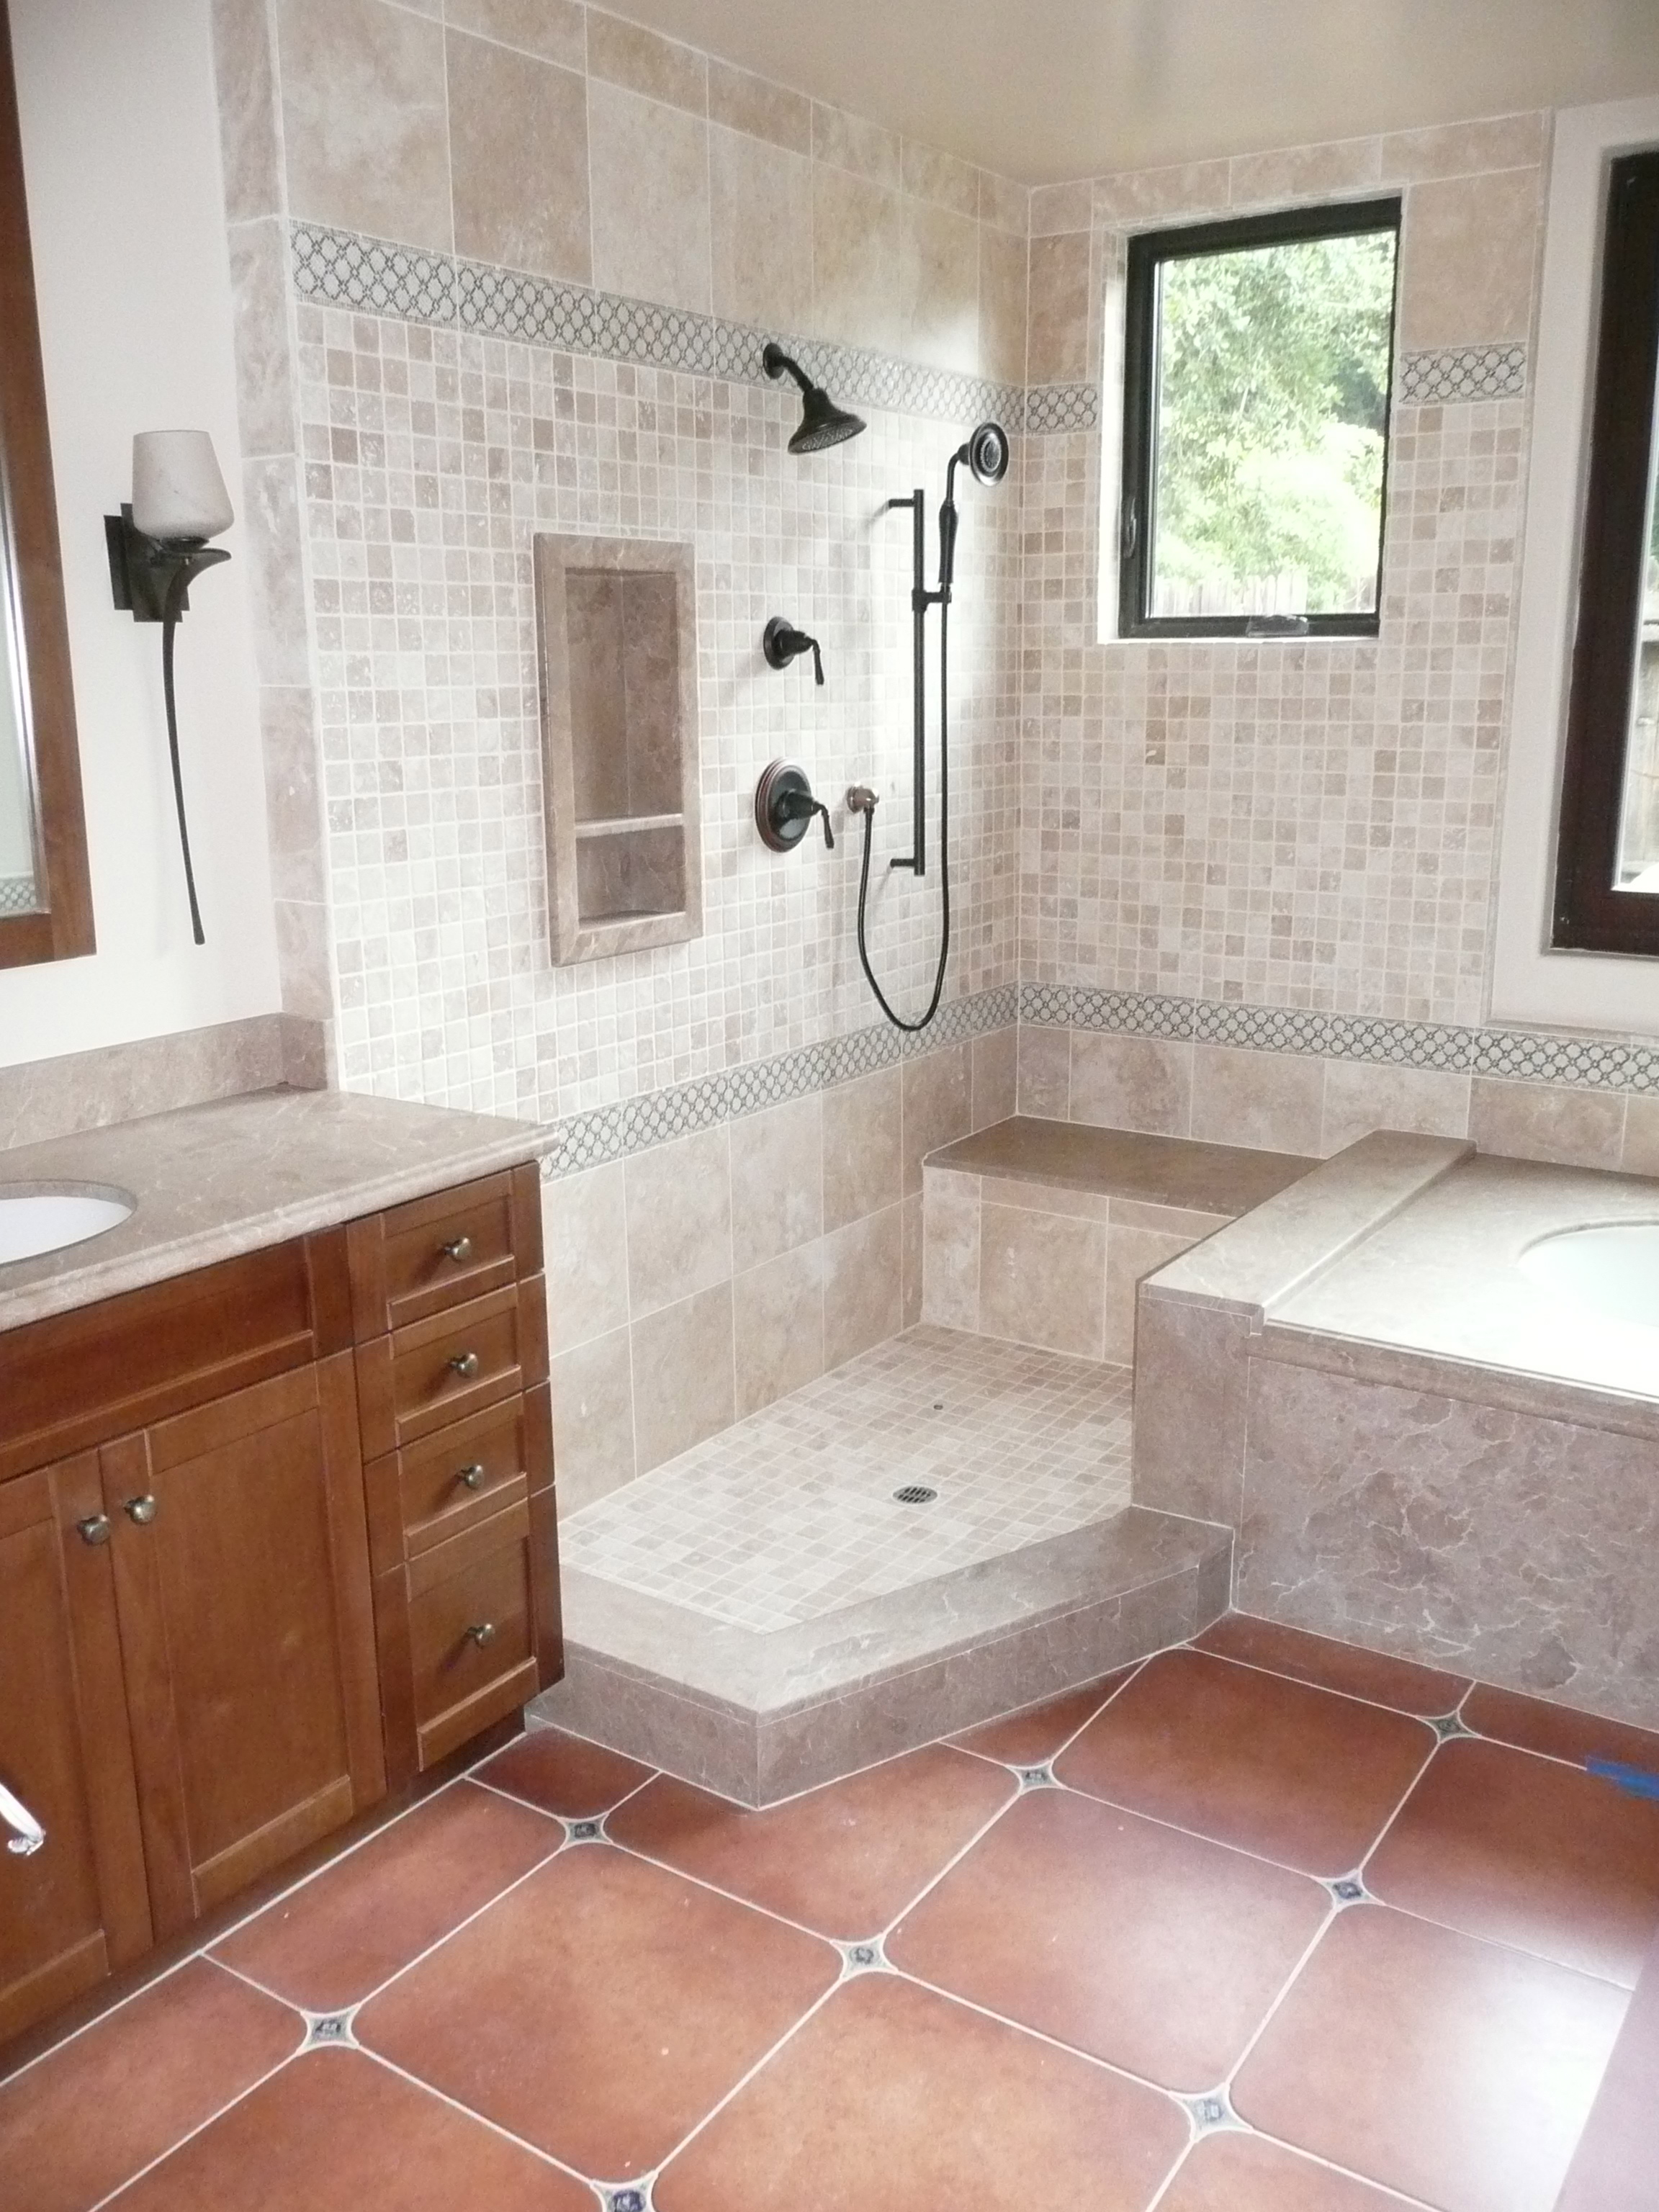 Eco Housing And Green Remodel Ideas Looking At Menlo